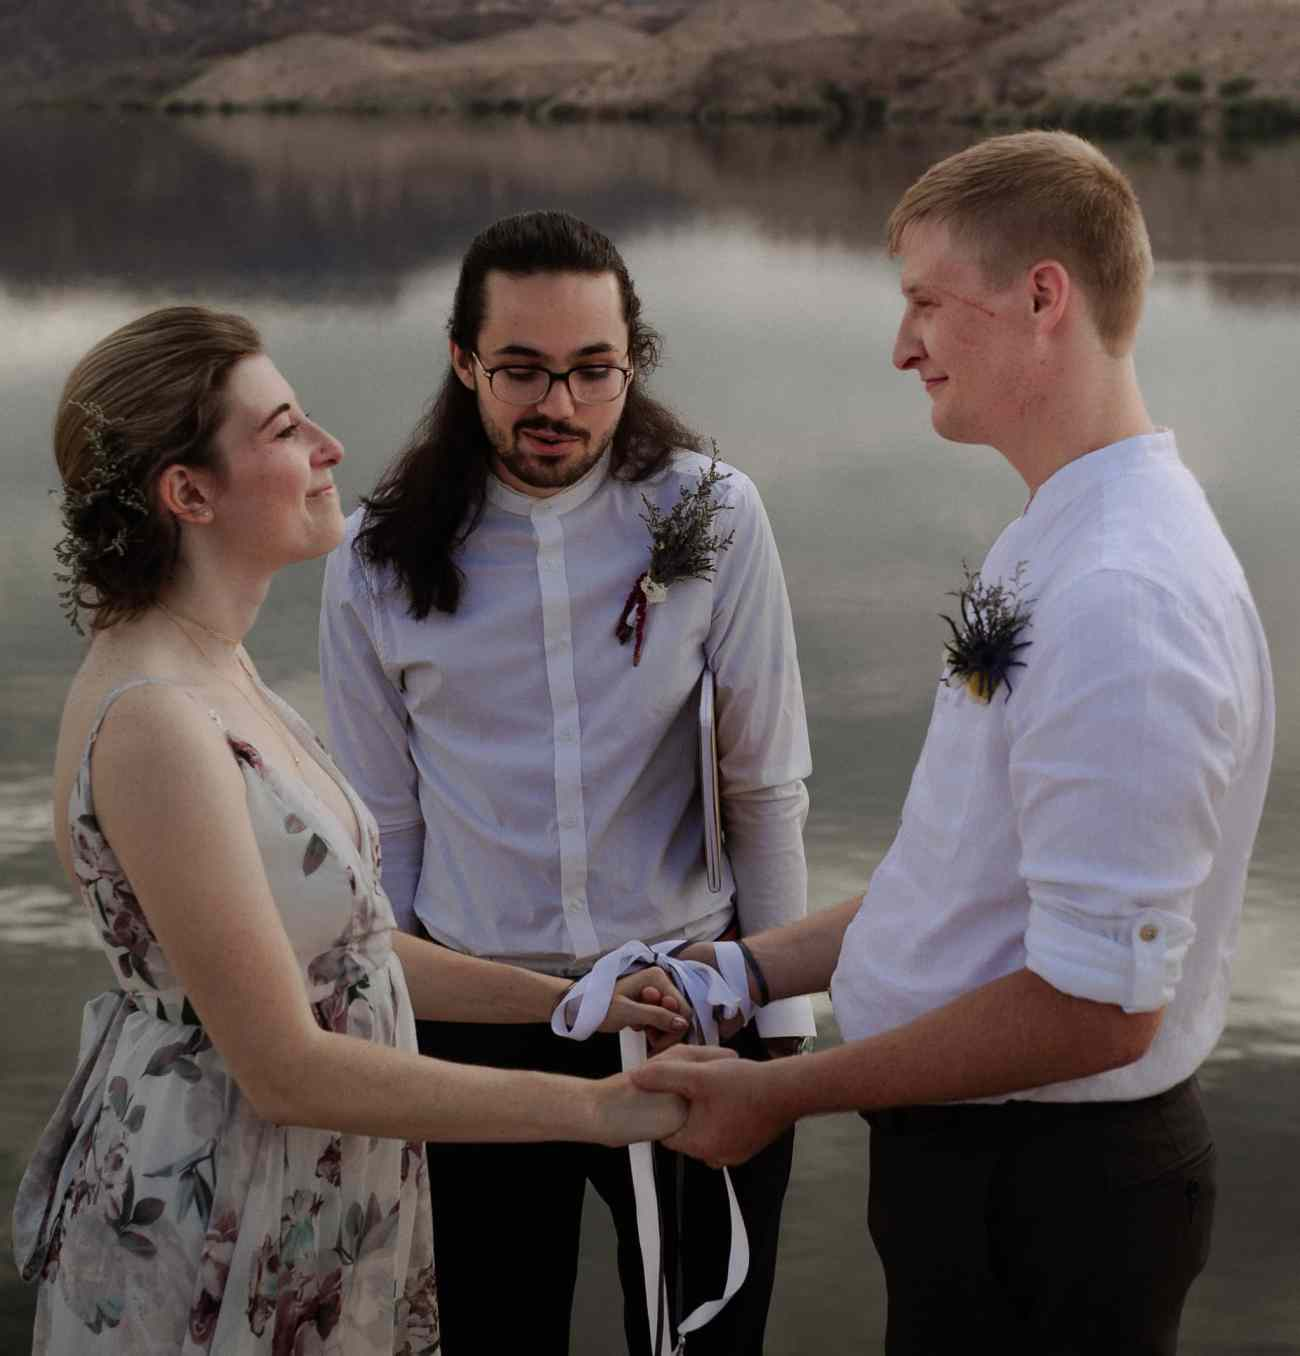 Bride and groom participate in hand-fasting ceremony at Nelson's Landing